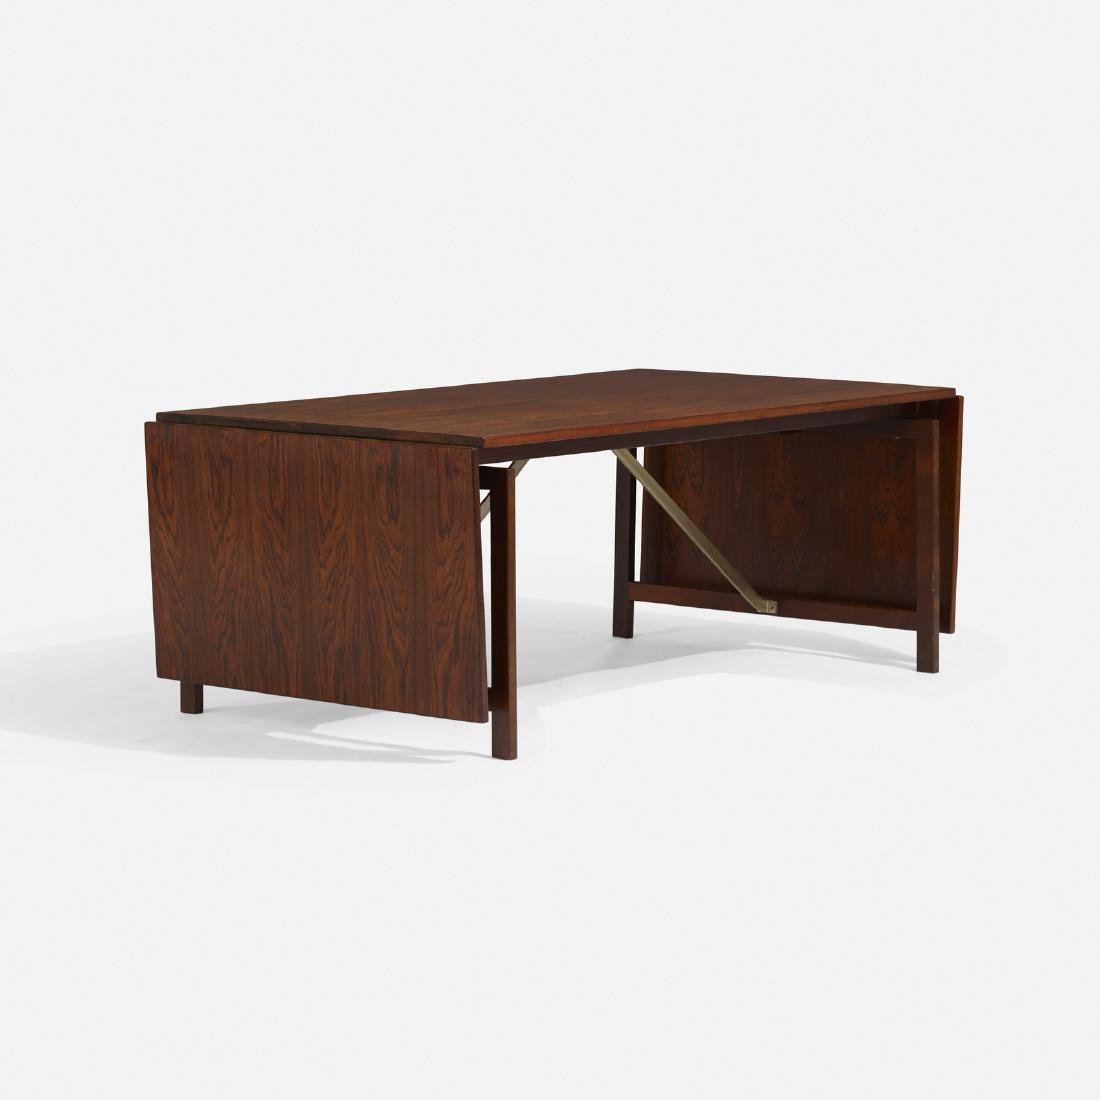 Hans J. Wegner, drop-leaf dining table - 3